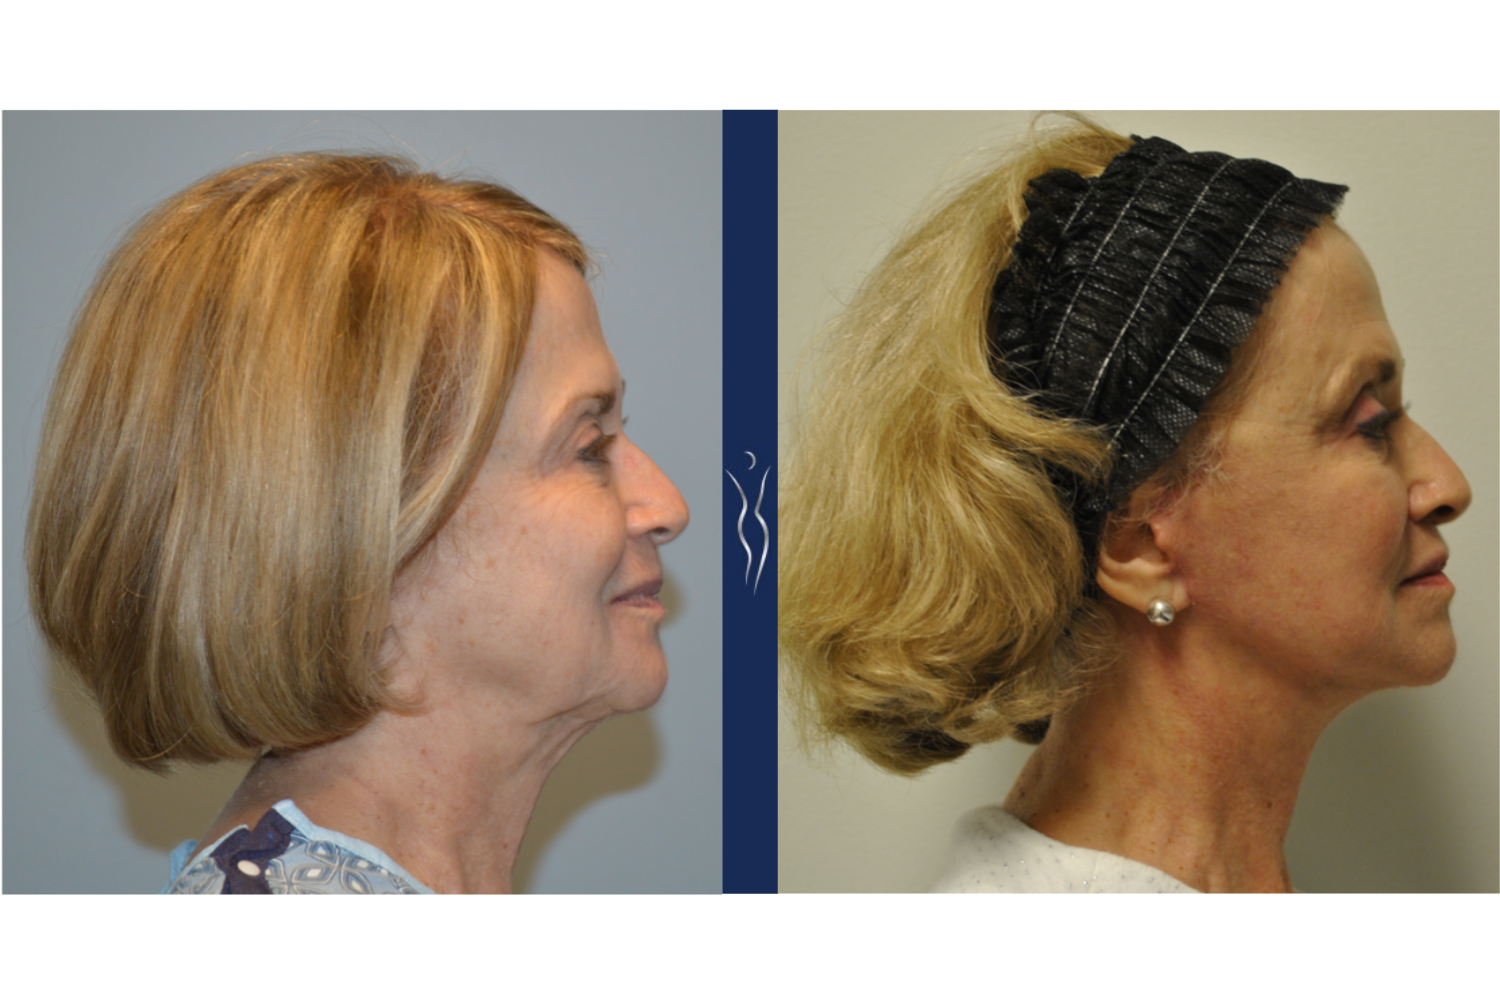 69 year old caucasian woman face and neck lift with upper eye lid lift, fat transfer to the face, and erbium skin resurfacing right lateral